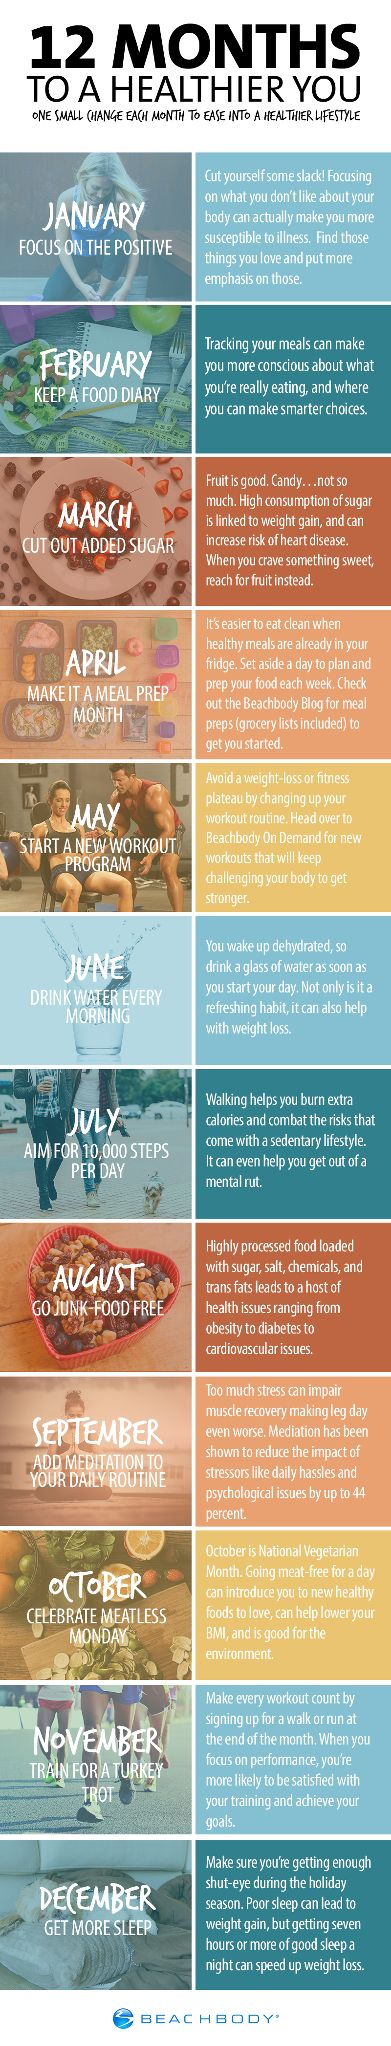 12 Months to a Healthier You -- Make one small change a month to create a healthier lifestyle. // nutrition // fitness // exercise // weight loss // simple healthy tips // 12 month guide // healthy habits // meal prep // beachbody // beachbody blog: